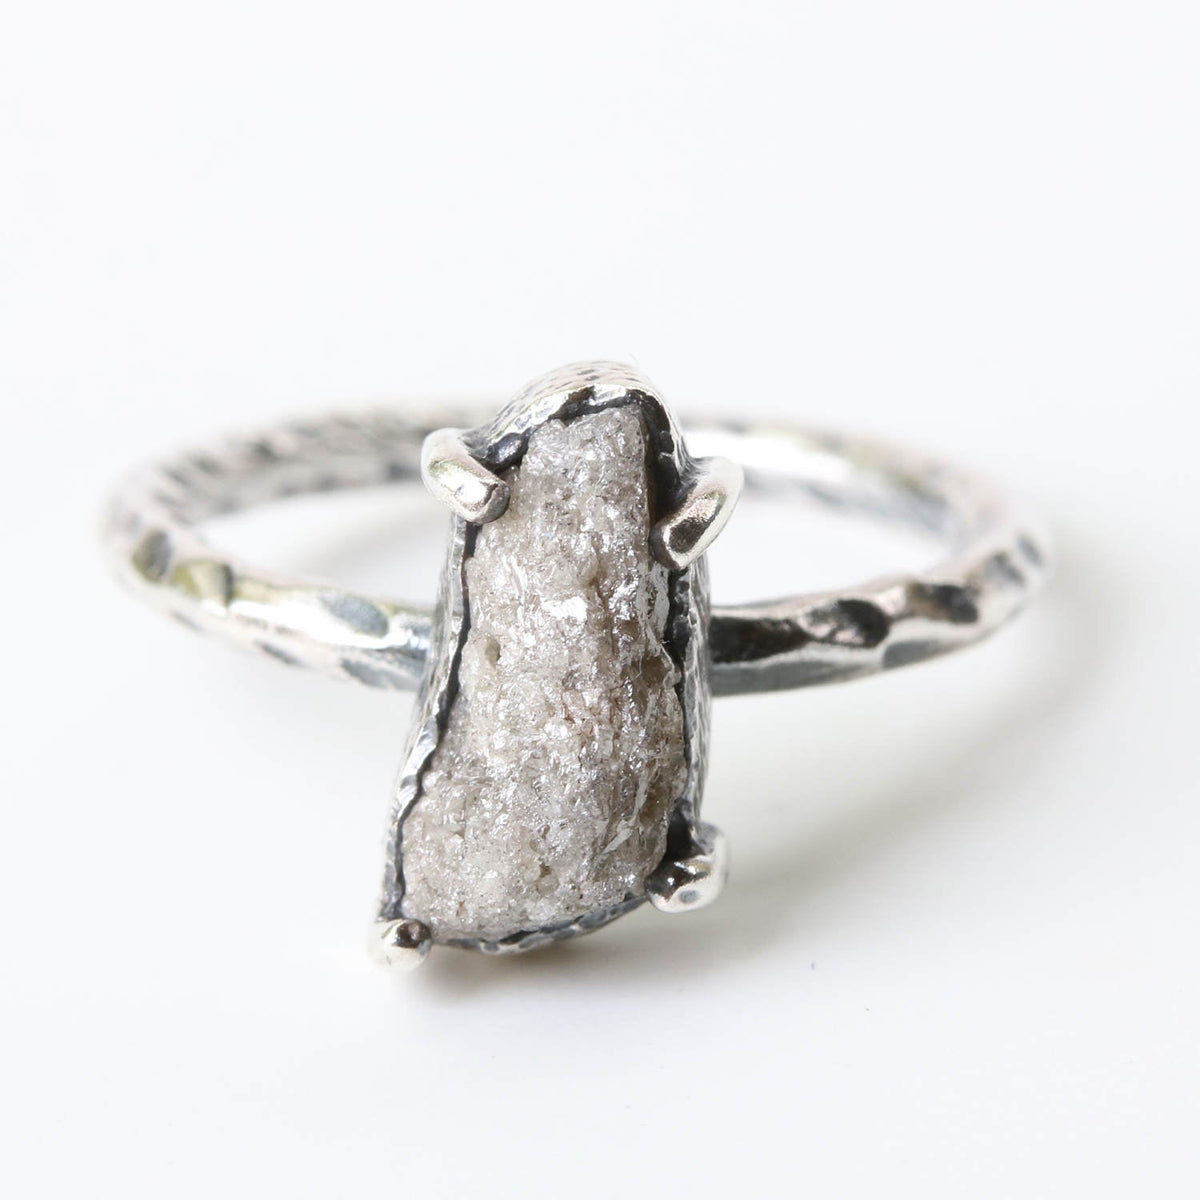 Large light color rough diamond ring in twist texture silver band